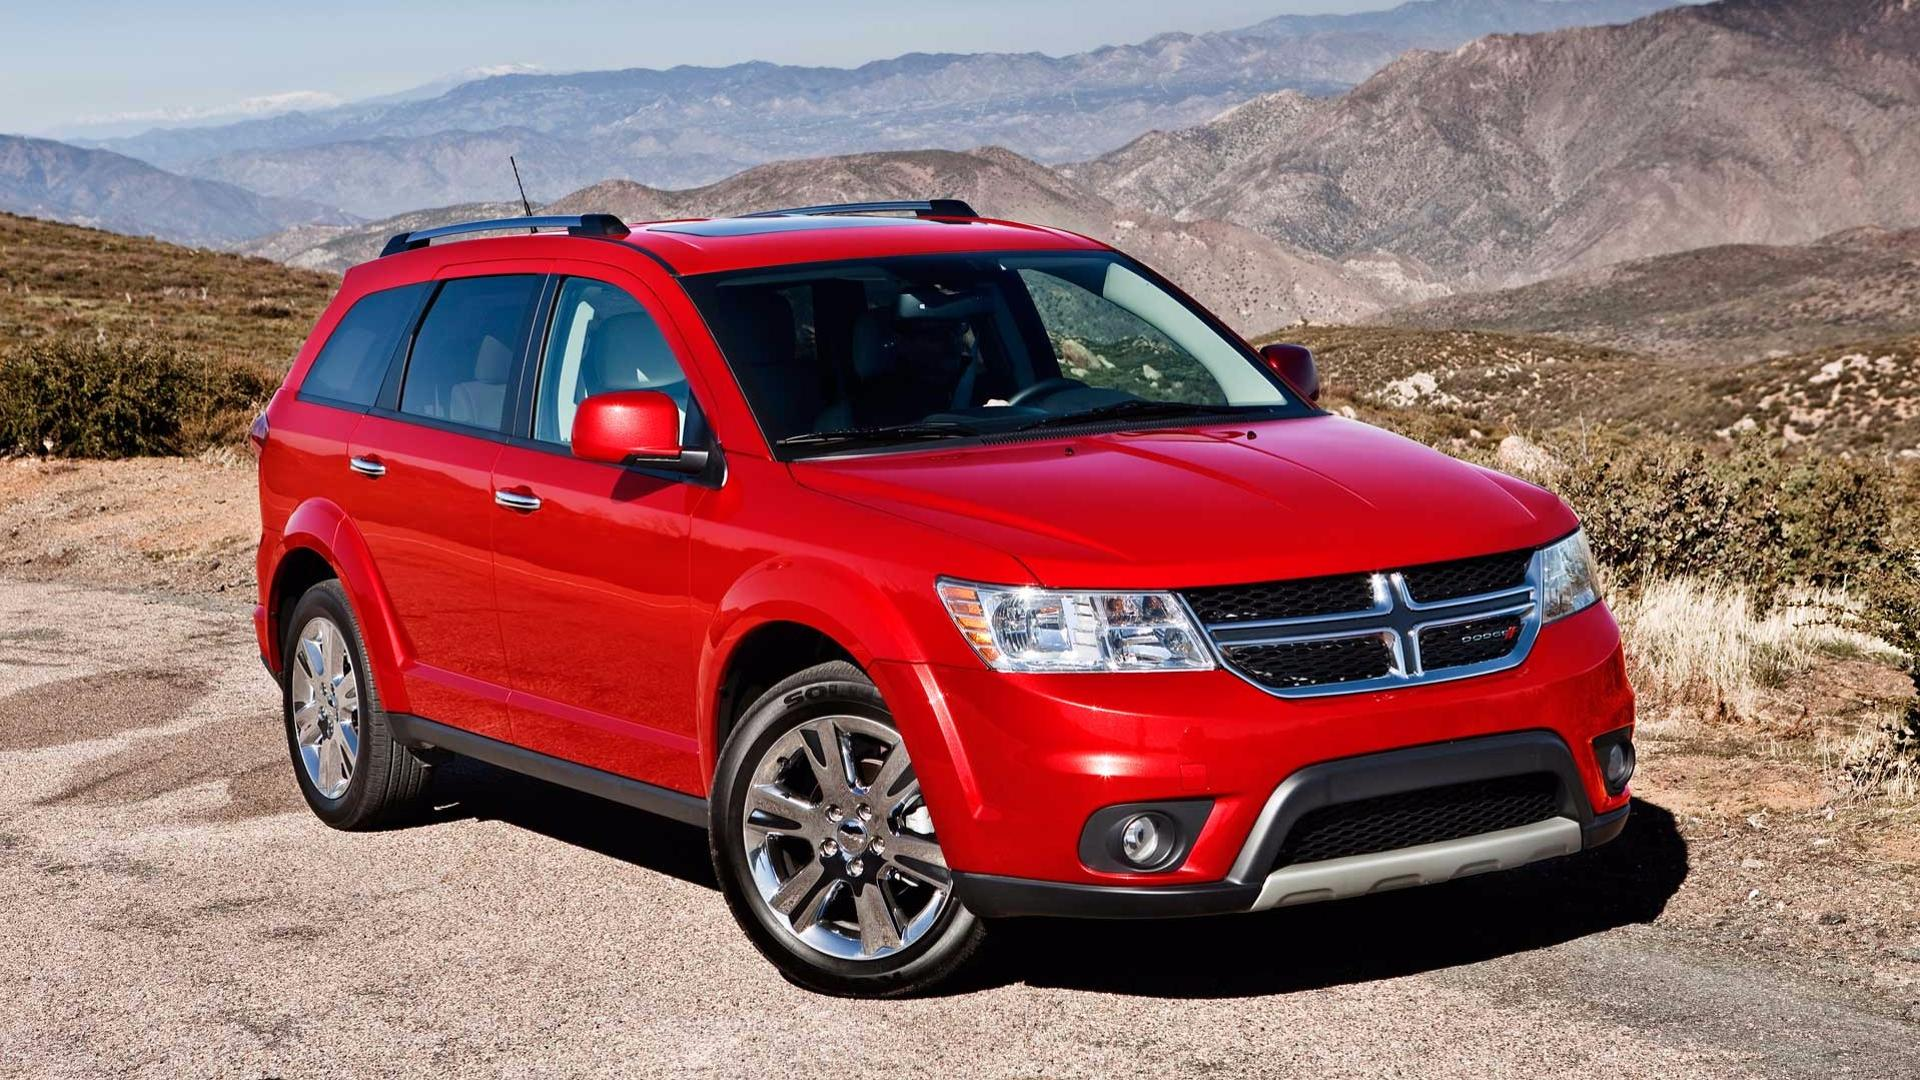 fca recalls 363k dodge journey crossovers for airbag issues rh motor1 com